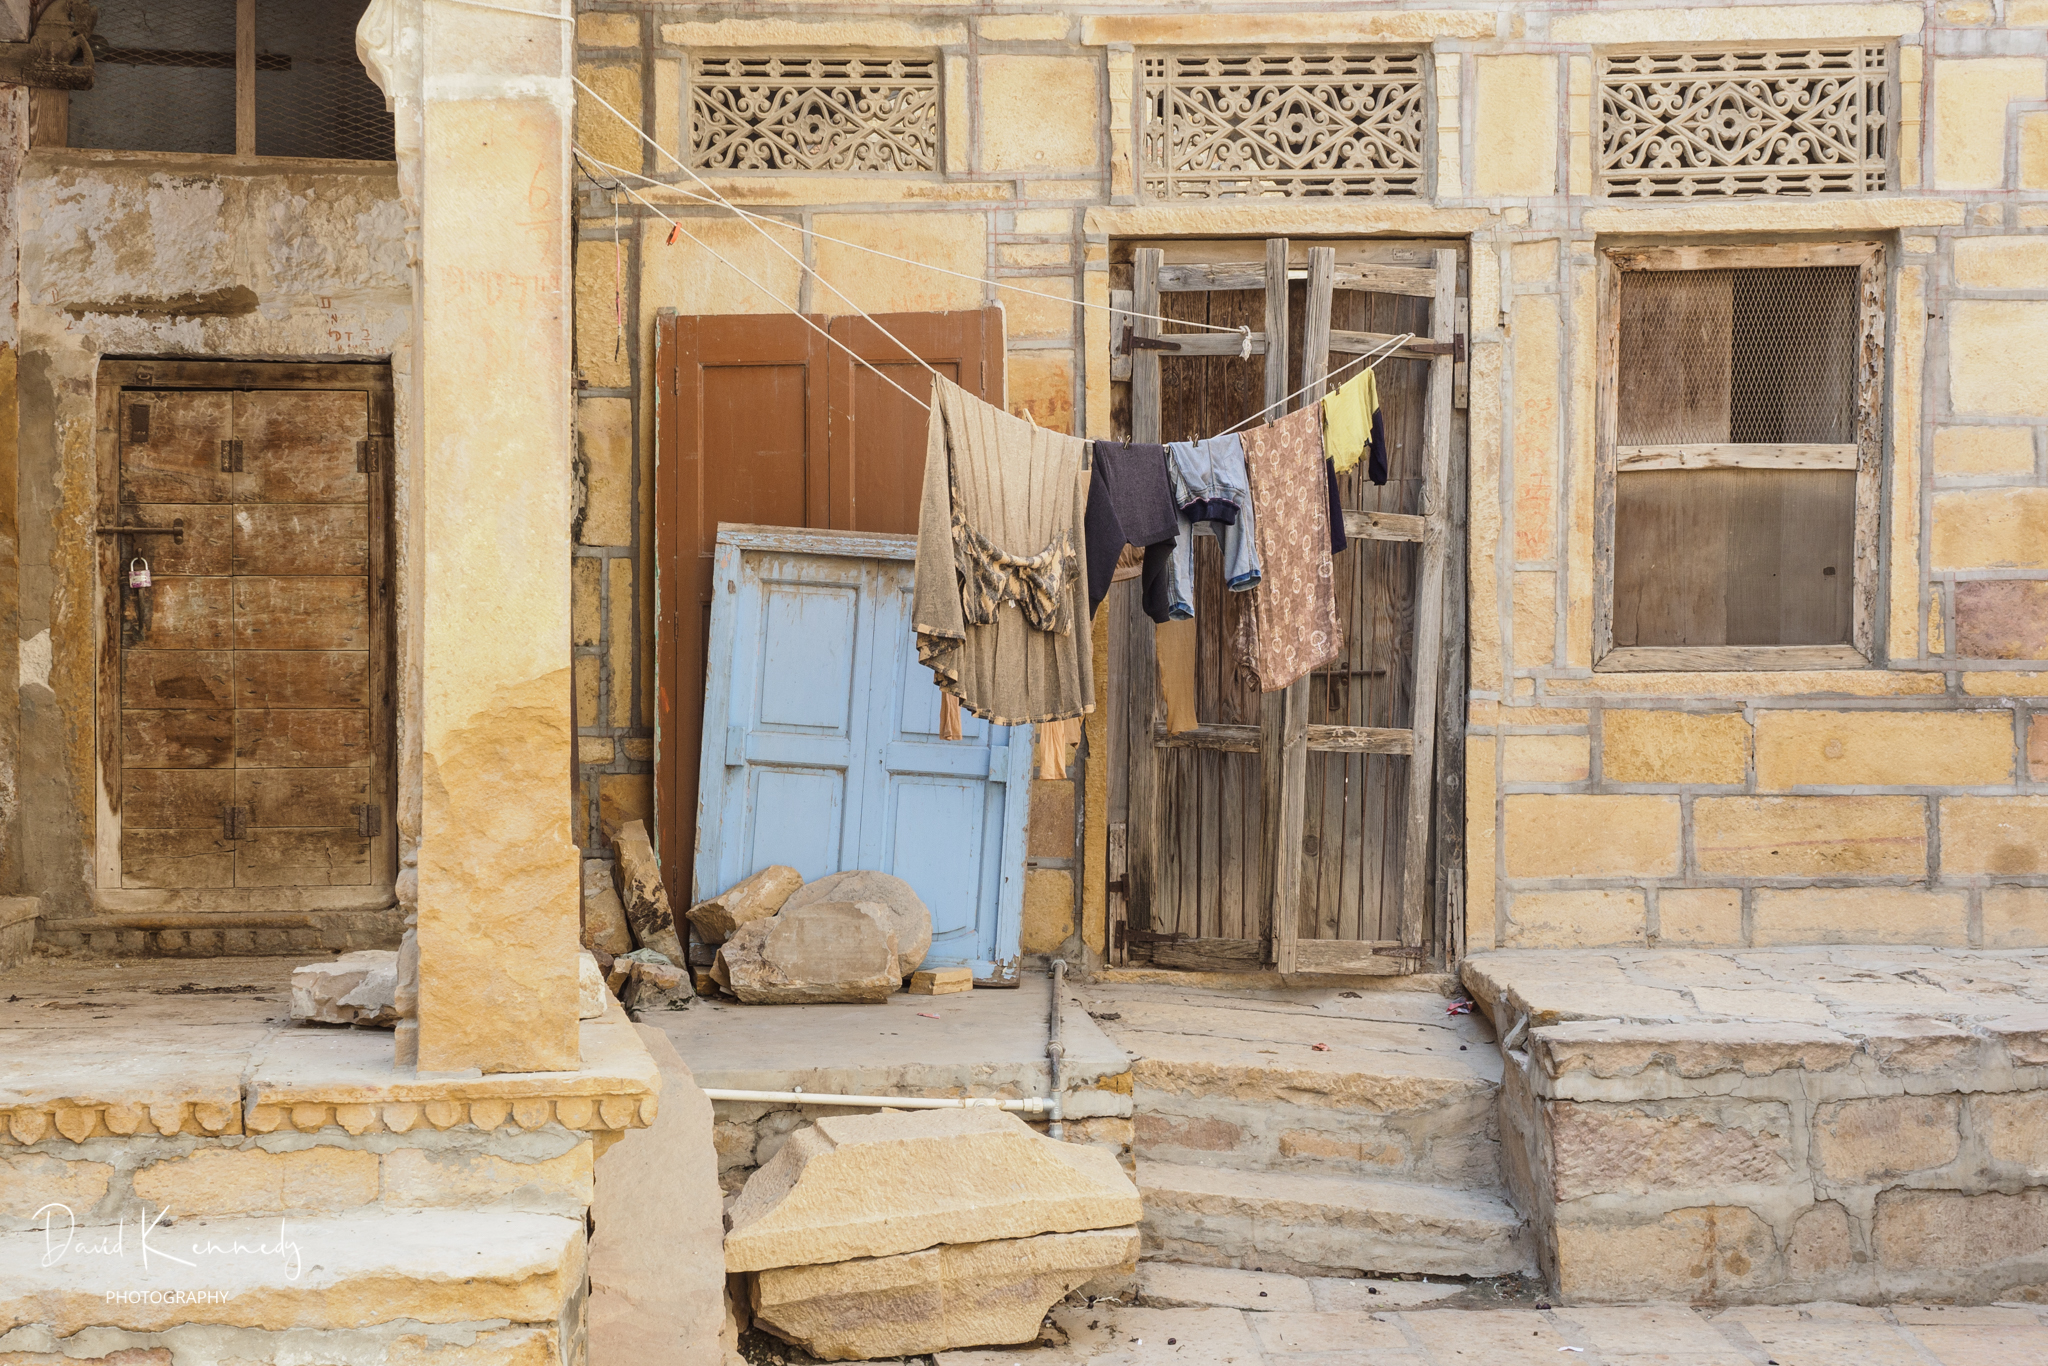 Washing on the line outside a house in the Old Fort at Jaisalmer